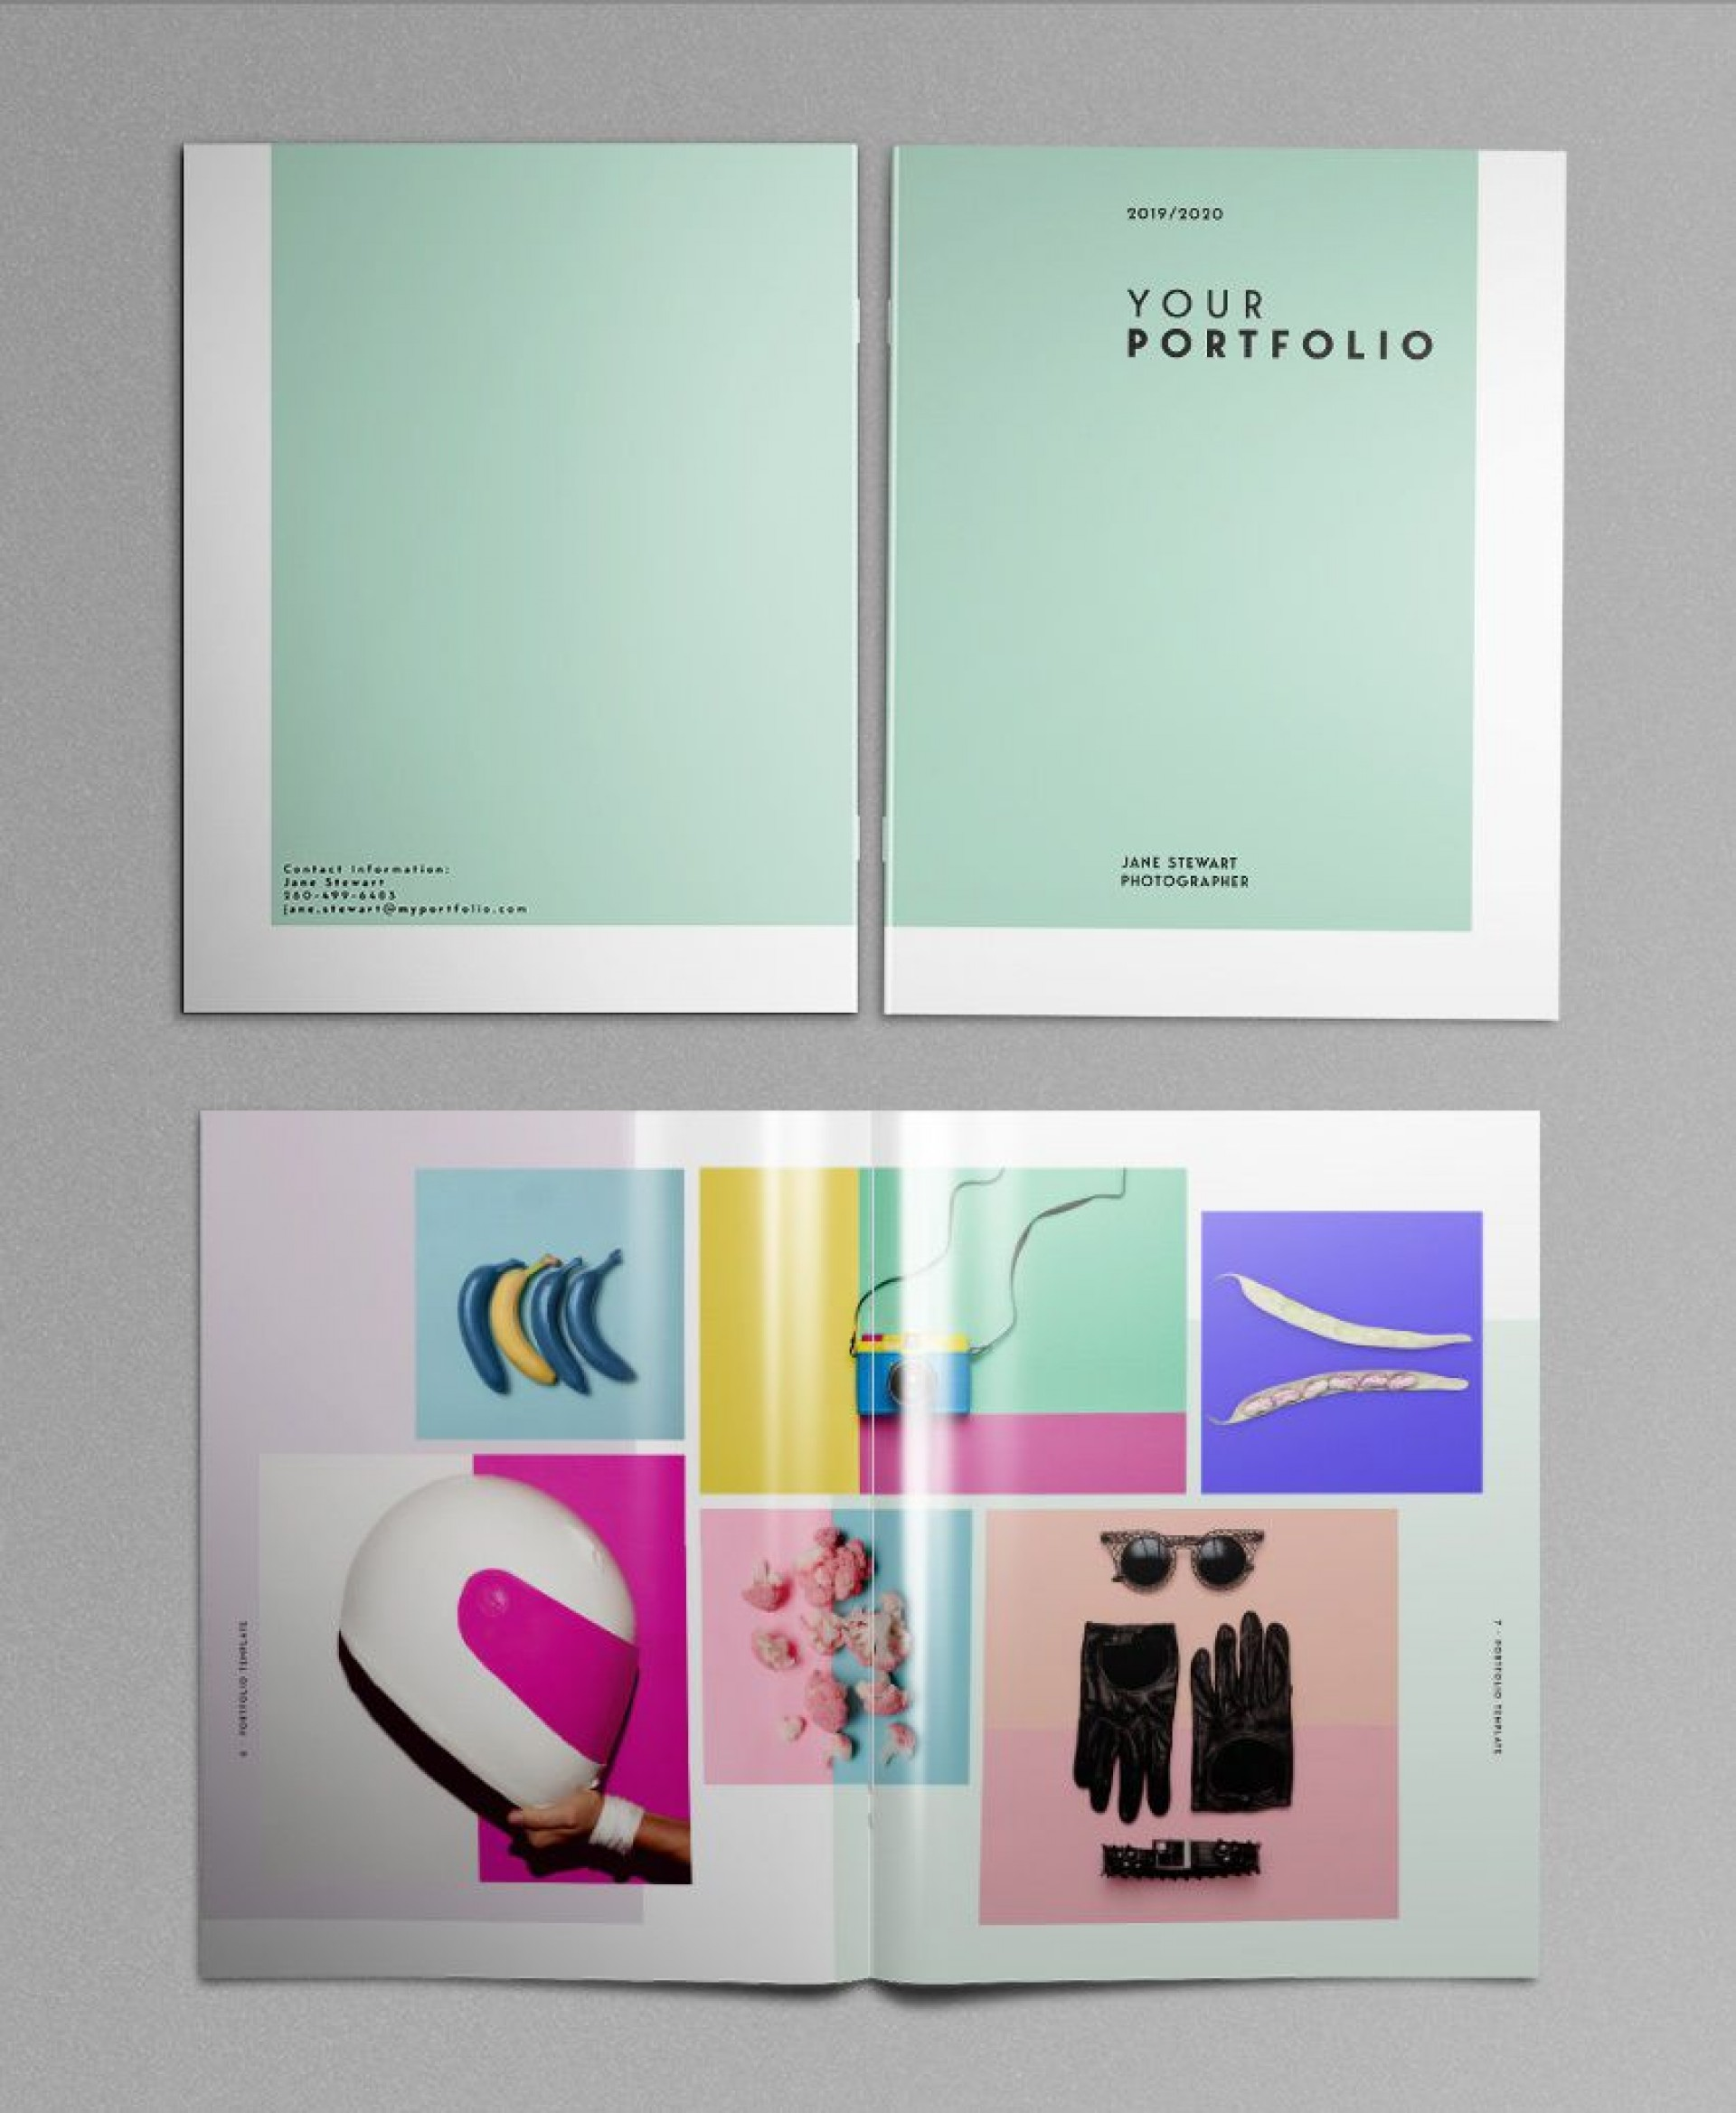 000 Singular In Design Portfolio Template High Resolution  Free Indesign A3 Photography Graphic Download1920